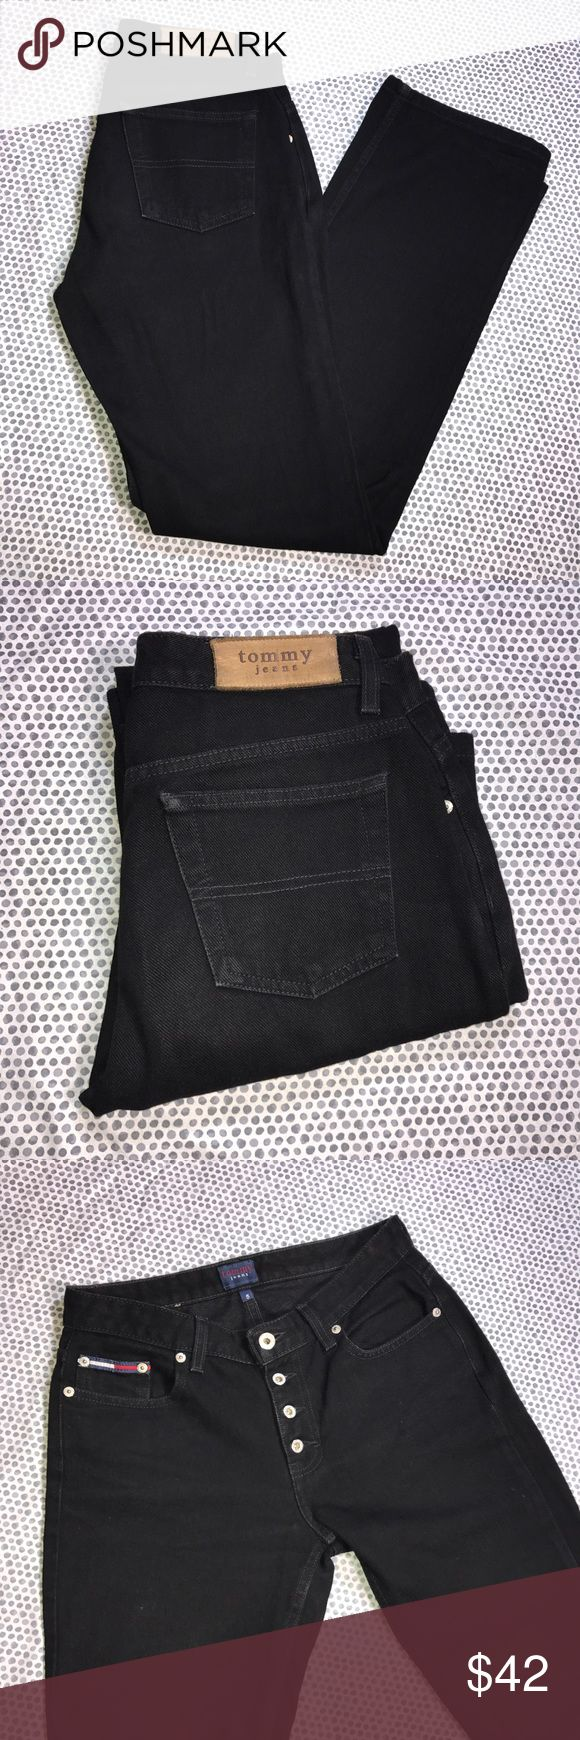 Tommy Hilfiger Early 2000's Black Bootcut Jeans Tommy Hilfiger Early 2000's Black Bootcut Jeans. Used to wear these when I was in high school! Super flattering and back in style! Size 5. Made of 100% cotton. Pre-owned, but in excellent used condition. No holes, stains or pilling. Measurements: Waist laying flat is 14 1/2 inches. Length is 41 1/2 inches. Inseam is 32 inches. Rise is 9 inches. Tommy Hilfiger Jeans Boot Cut